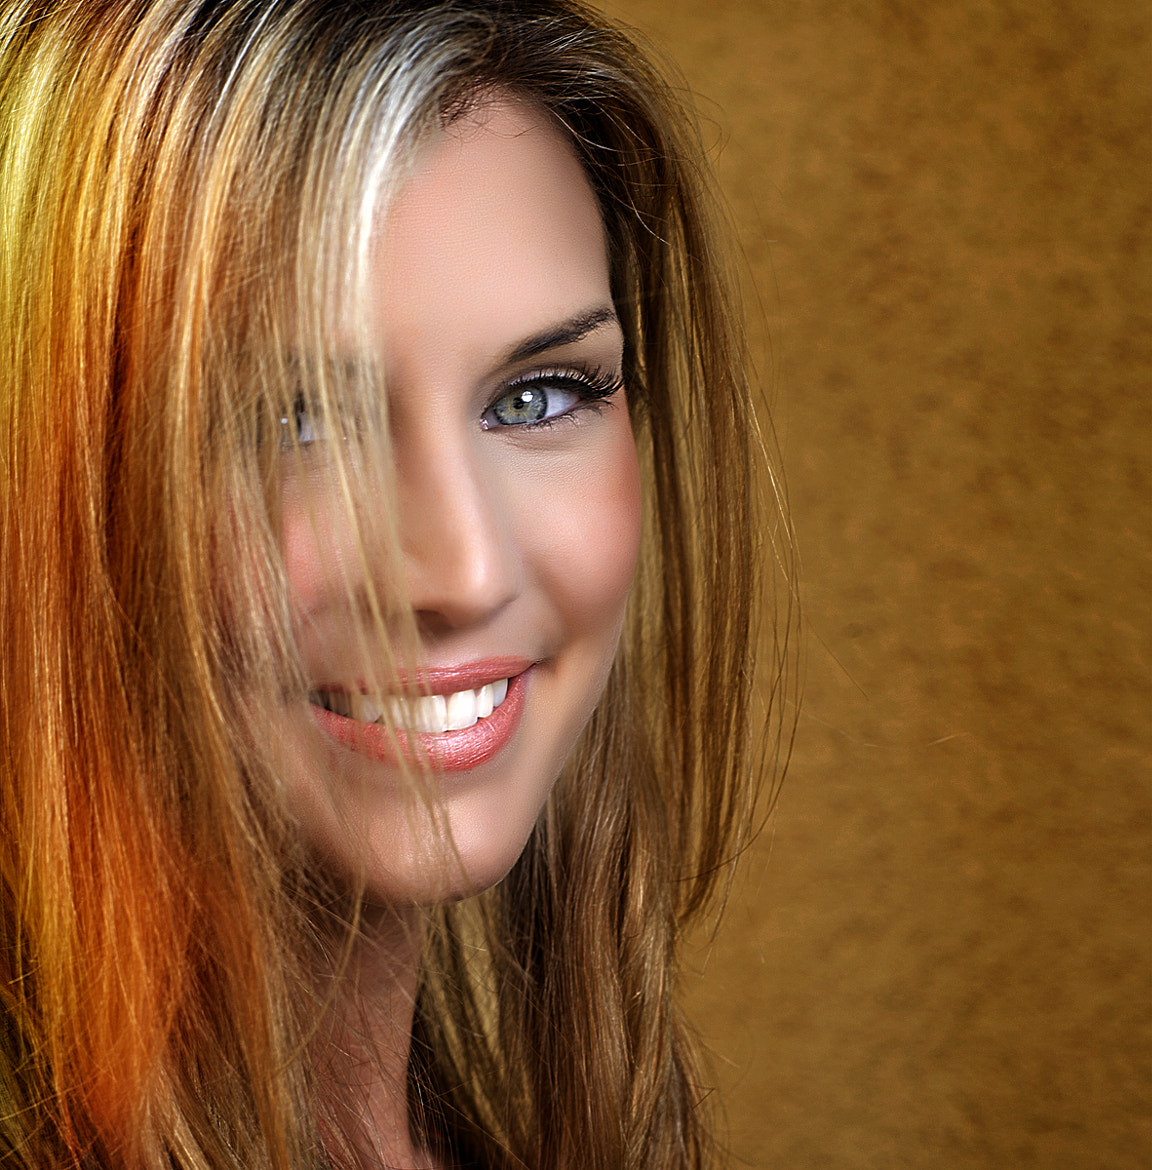 Photograph tiffany's smile by nelly putnam on 500px